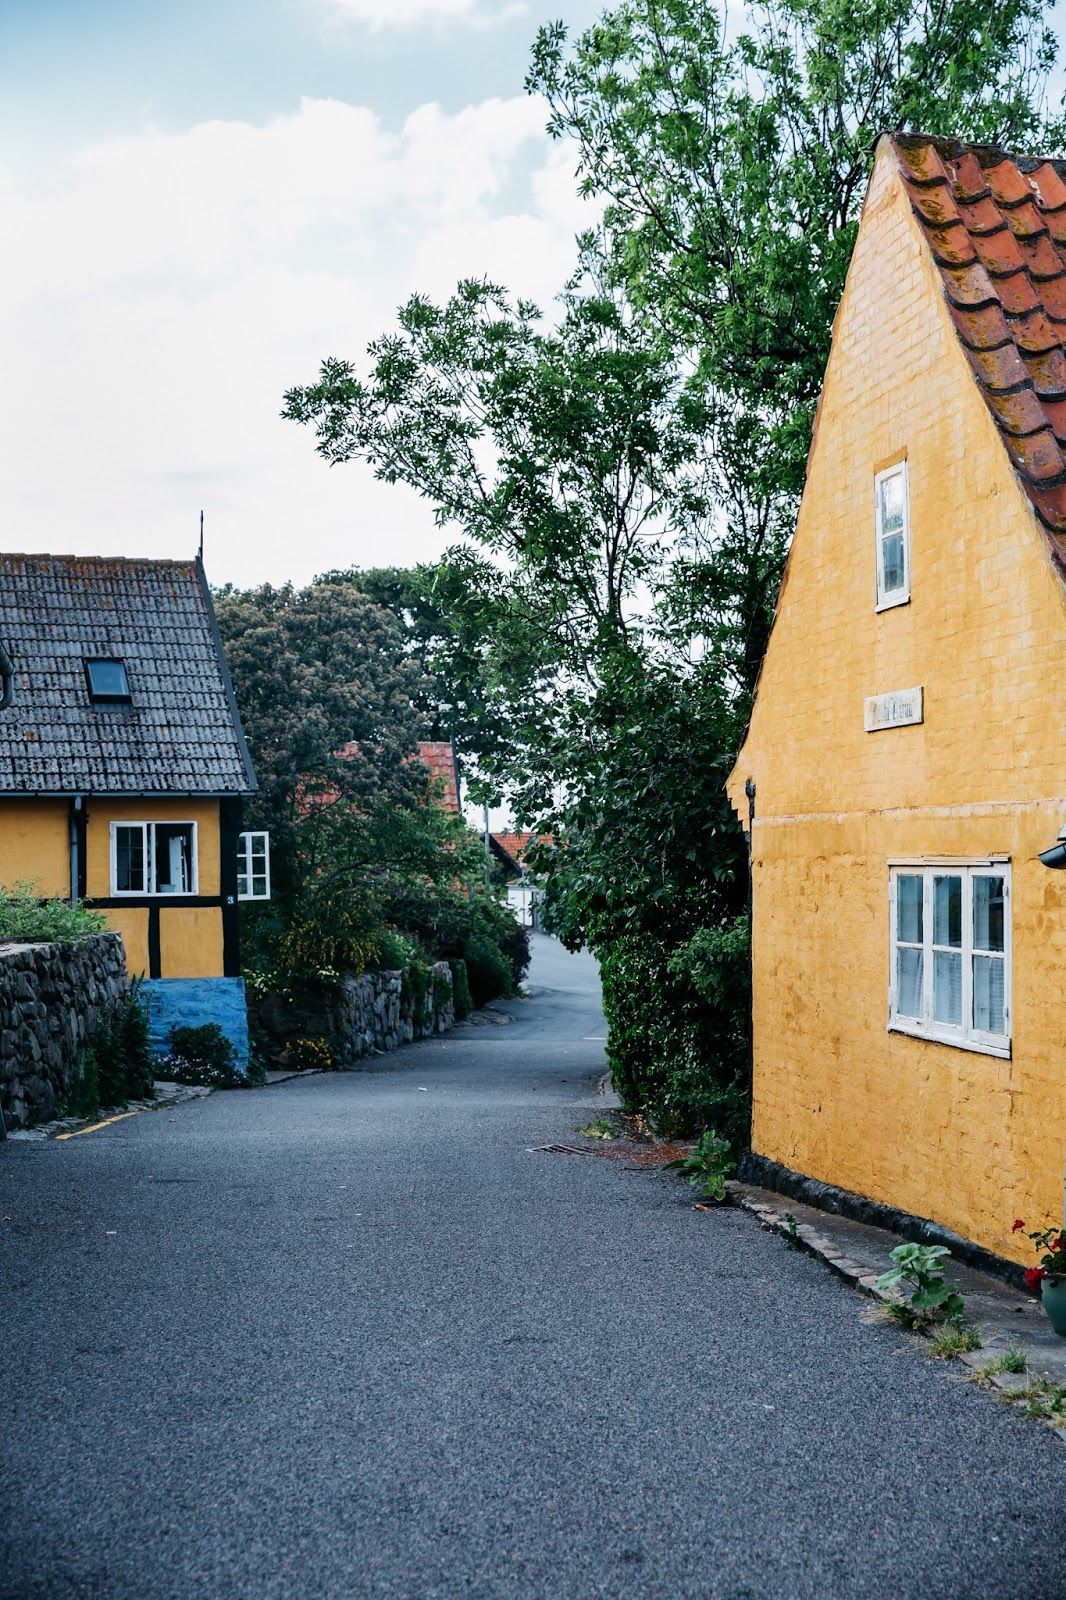 our food stories: Postcard from Bornholm